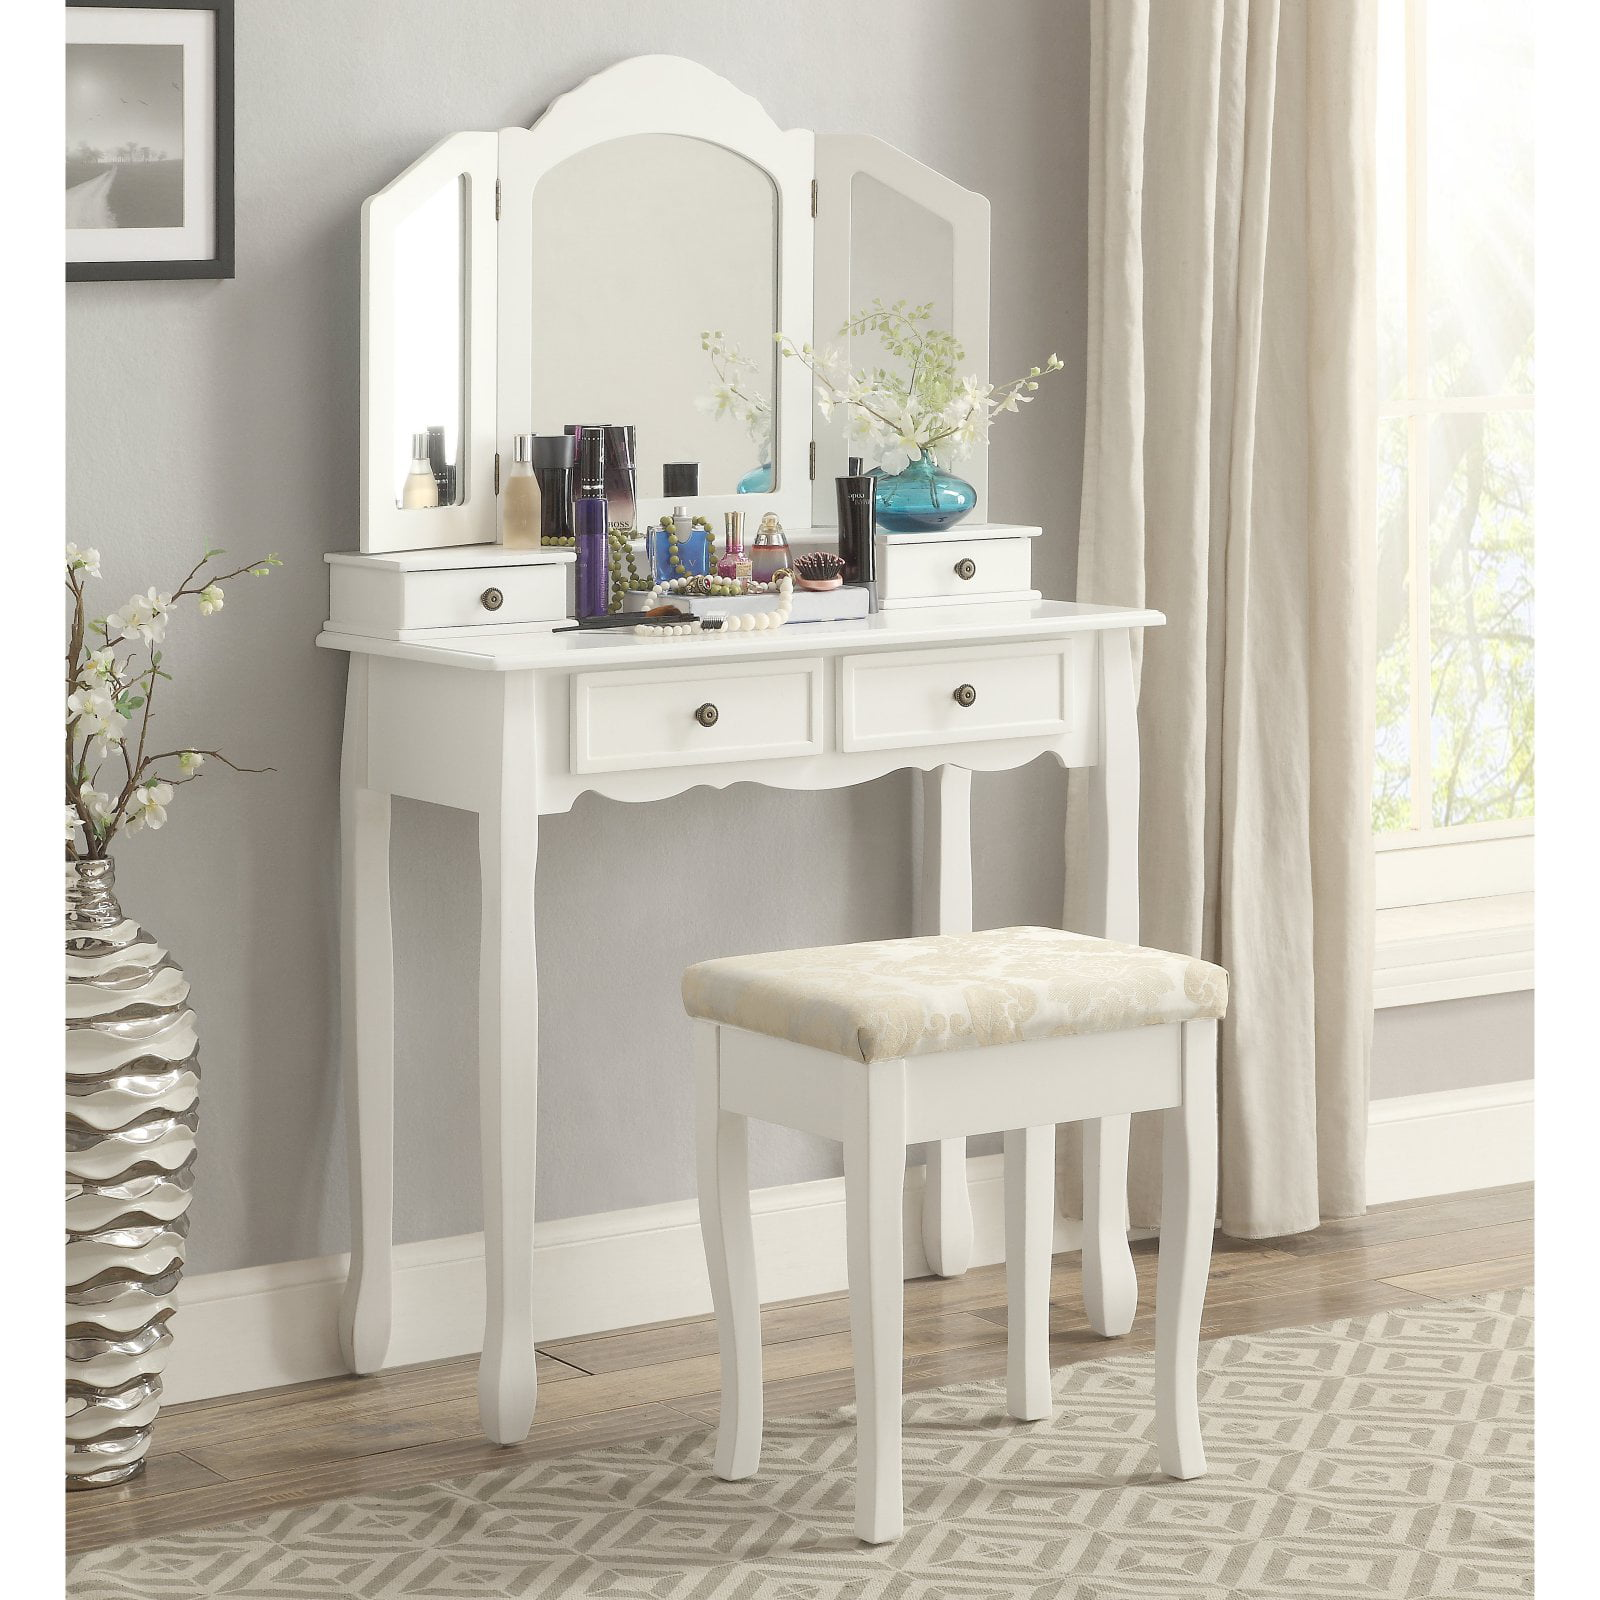 Roundhill Furniture Sanlo White Wooden Vanity Make Up Table And Stool Set